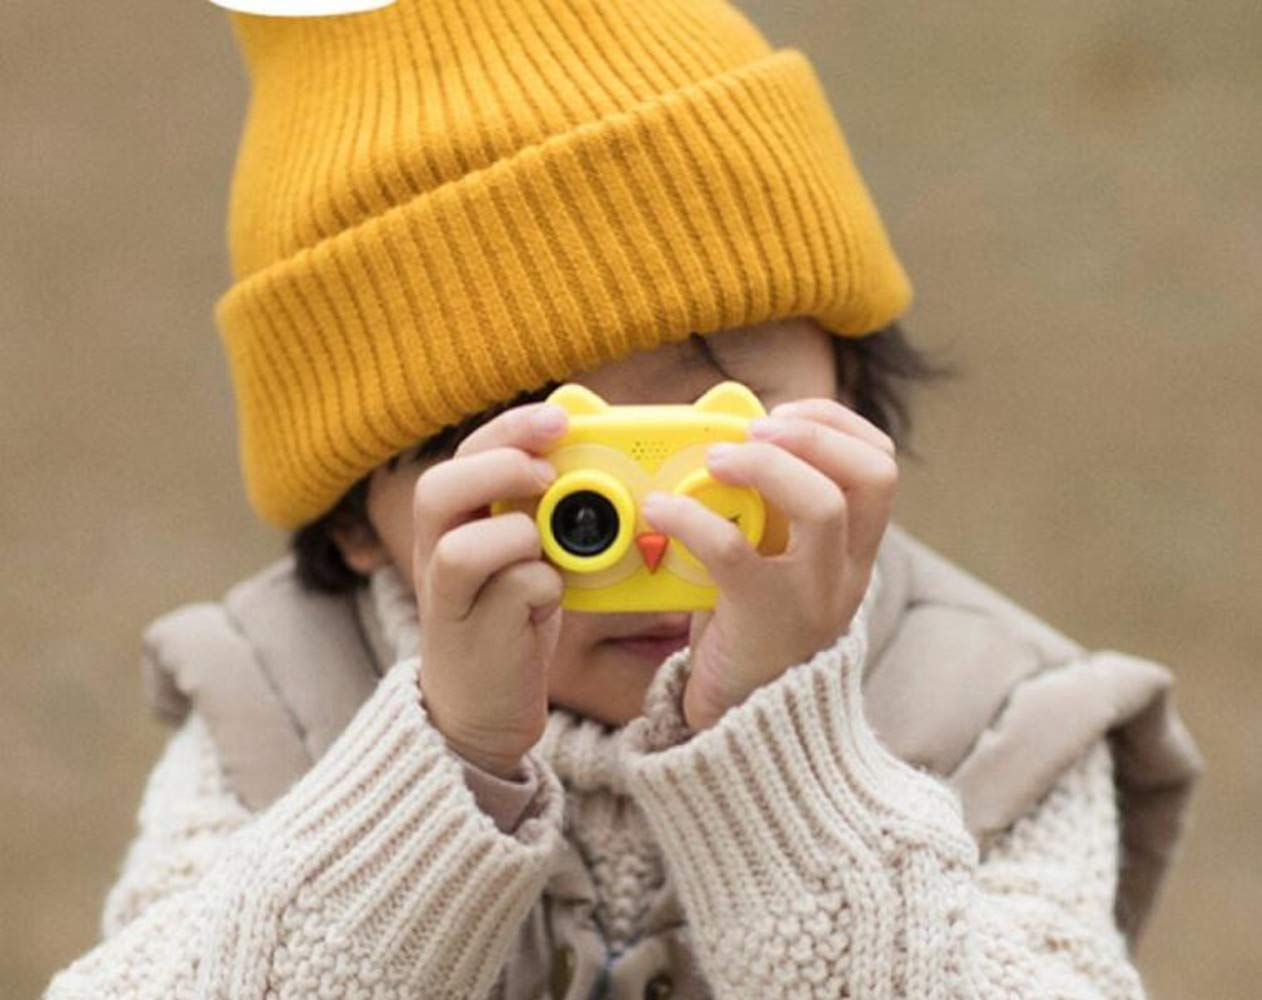 ISHOWStore Mini WiFi Camera for Children HD 8MP External SD Card Digital Video Shakeproof Camcorder for Children with Free 16G Memory Card 82x58x31mm (Yellow Owl) by ISHOWStore (Image #5)